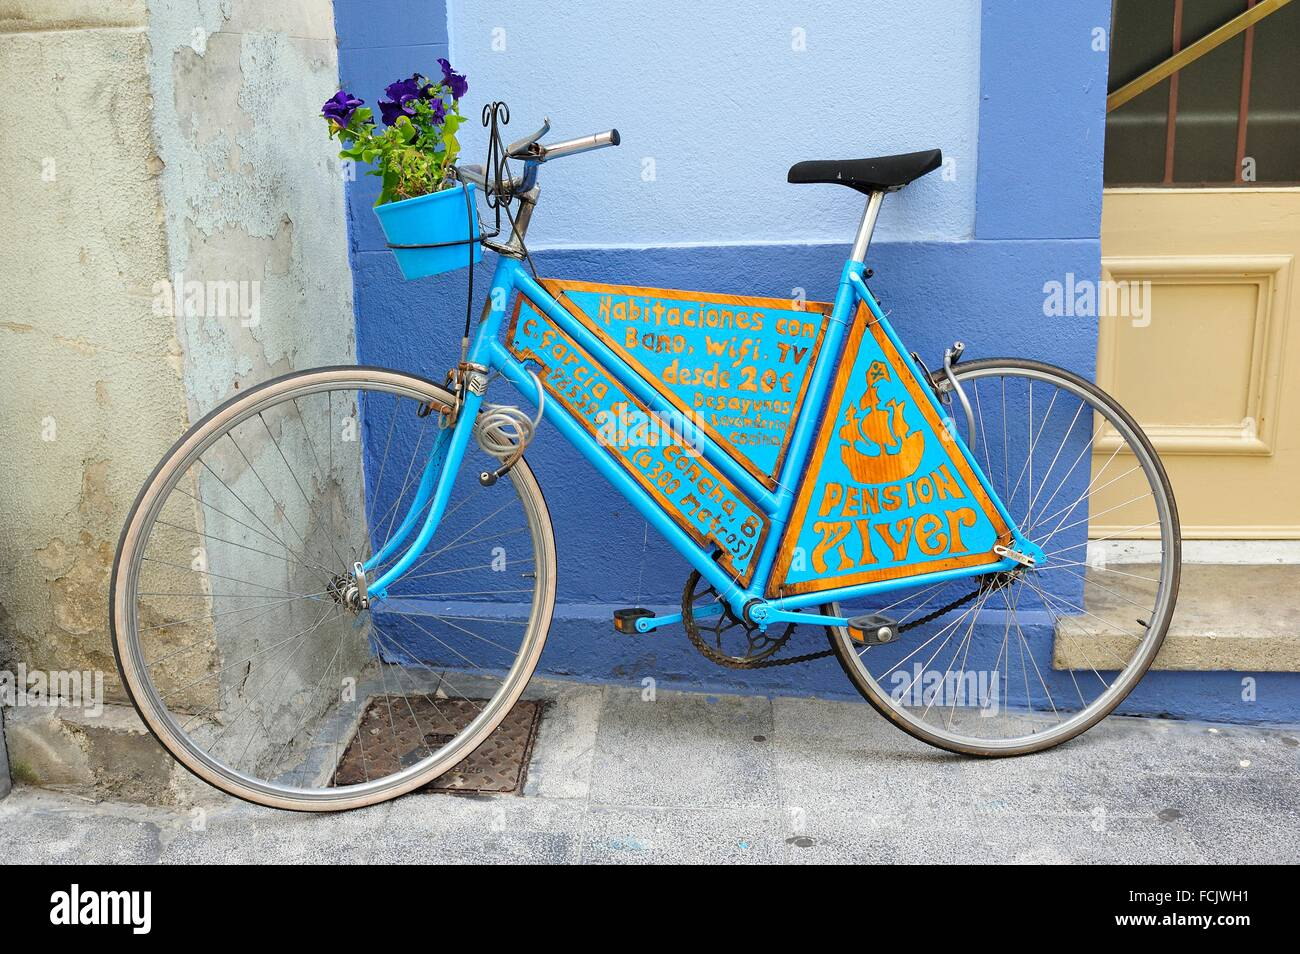 Decorative bicycle promoting Pension Alver, Cudillero, Asturias, Spain. - Stock Image